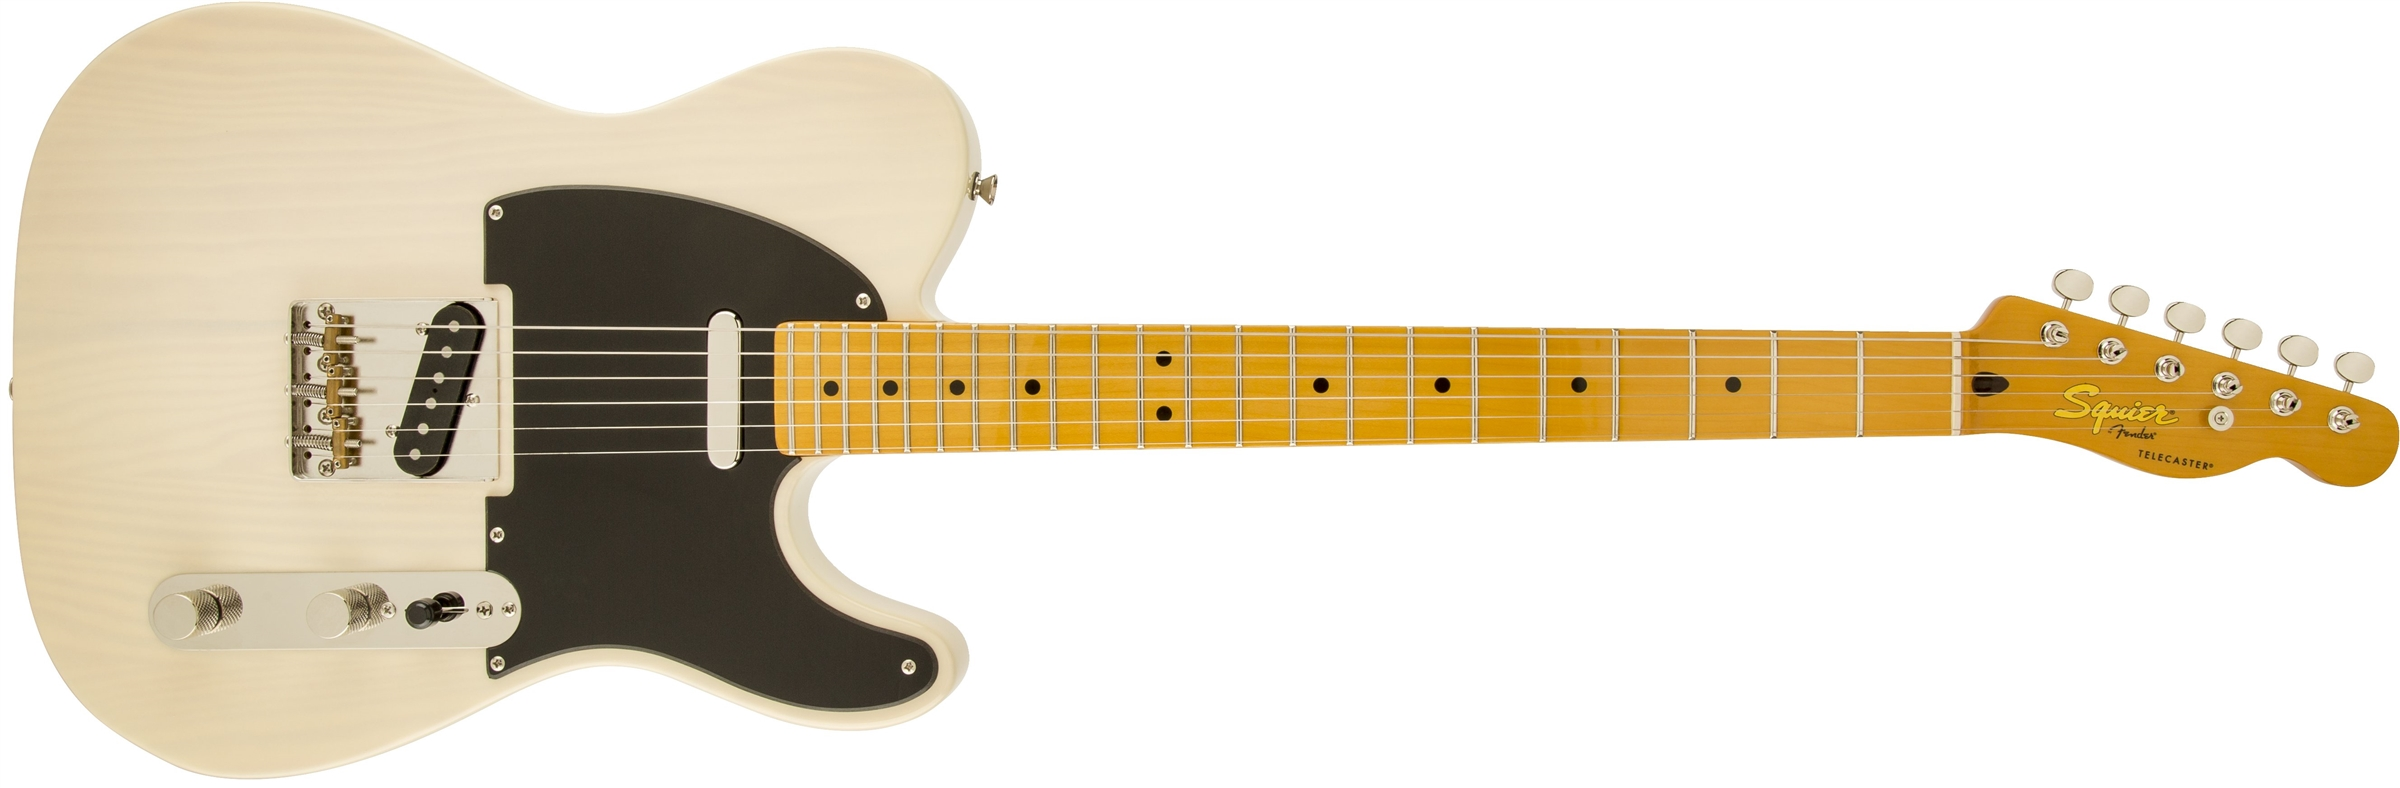 Squier Classic Vibe Strat Wiring Diagram - House Wiring Diagram ...